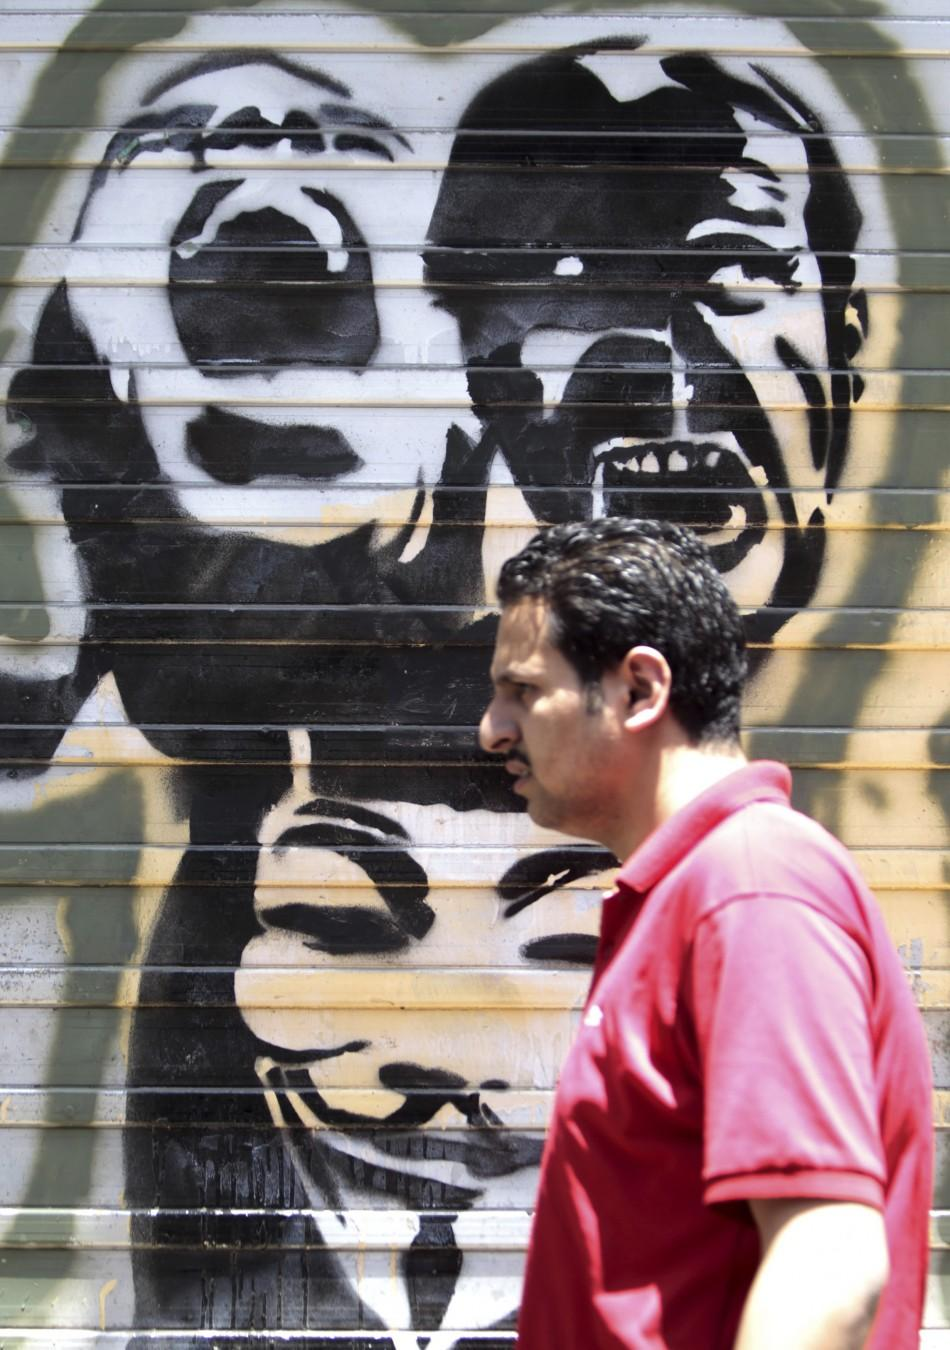 An Egyptian man walks in front of a wall sprayed with graffiti depicting protesters shouting, near Tahrir Square in downtown Cairo